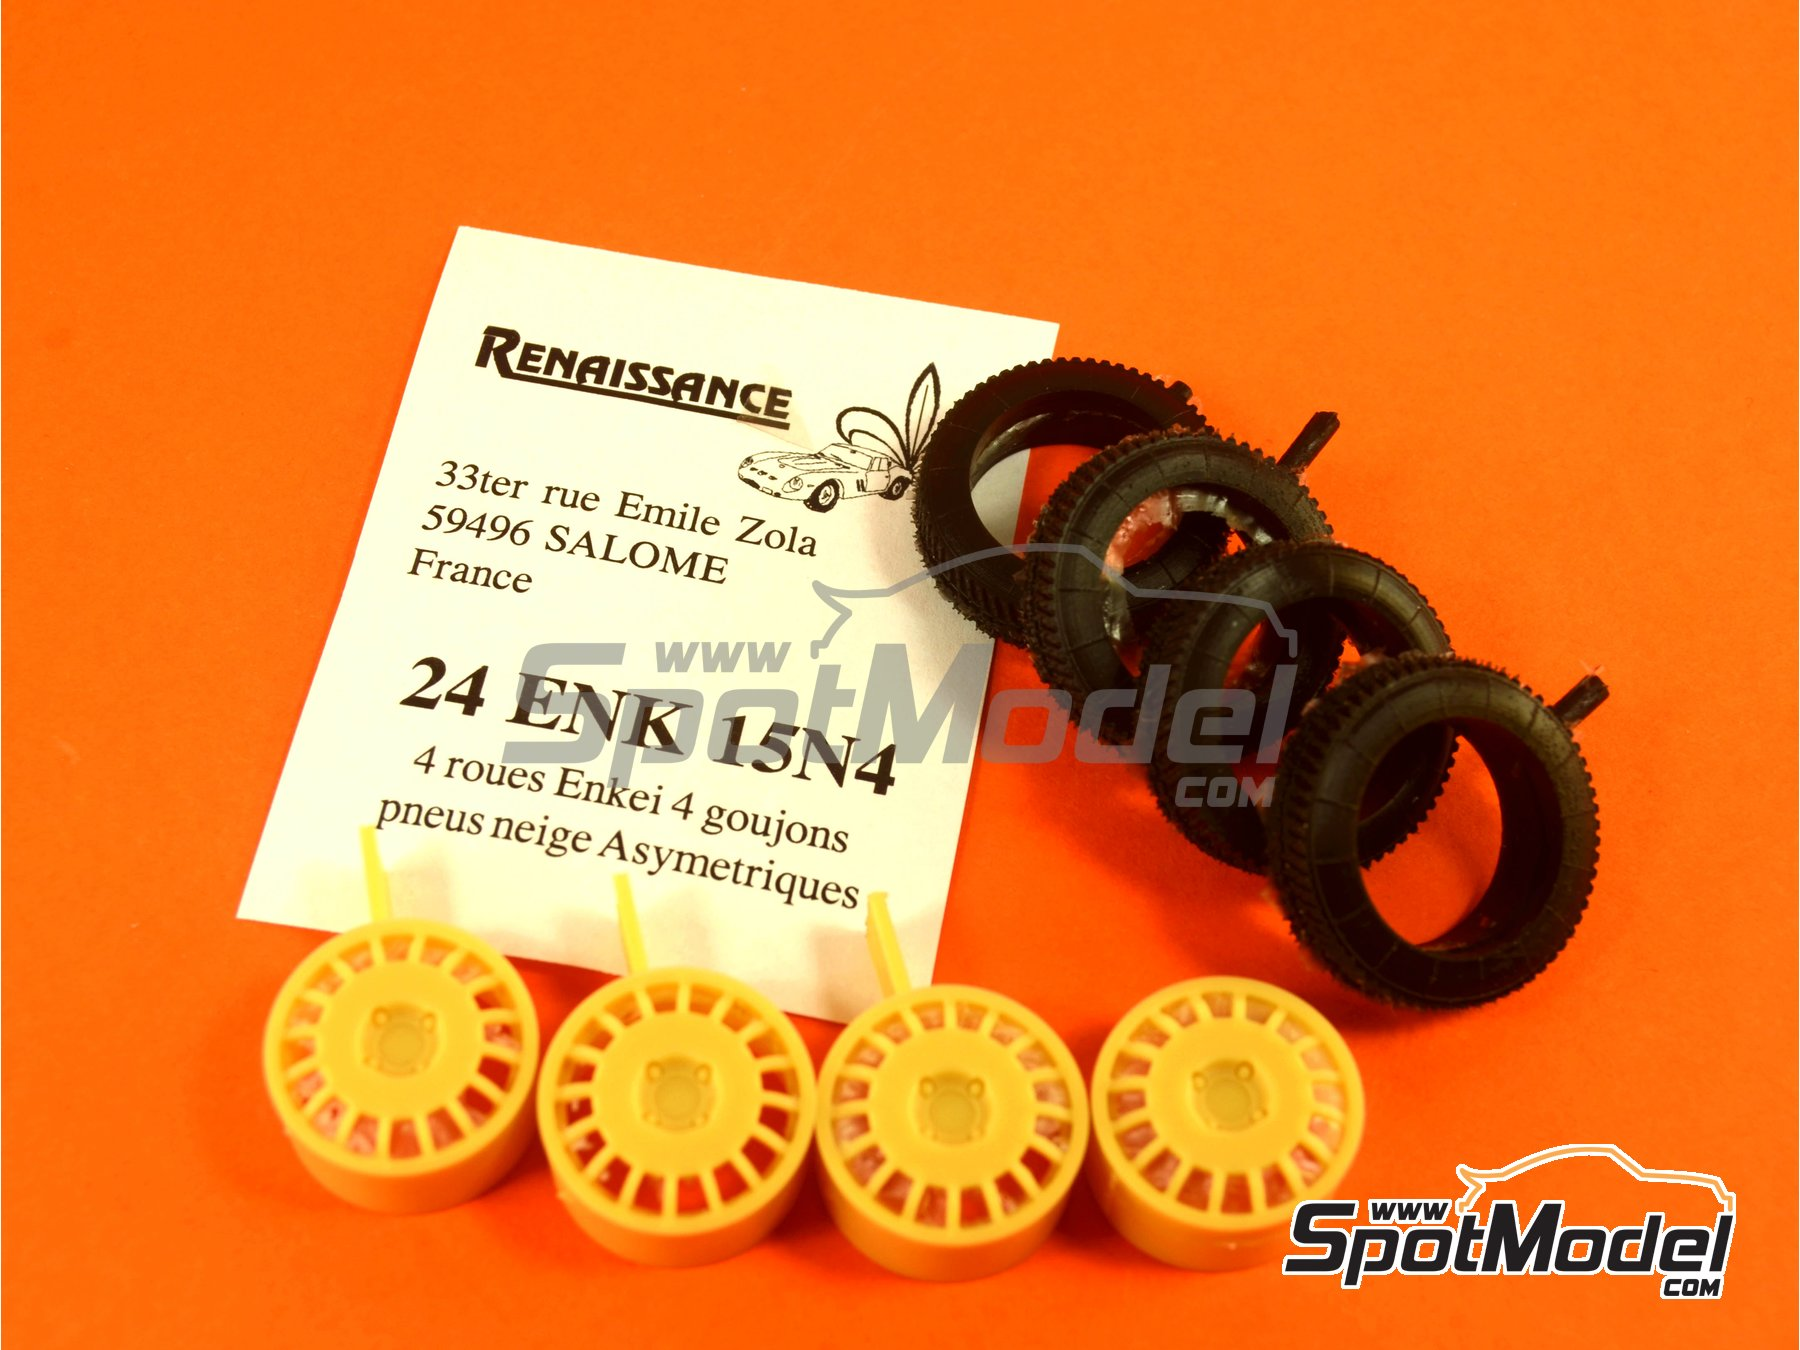 Image 4: Enkei 15 inches 4 nuts asymmetric snow tyres | Rims and tyres set in 1/24 scale manufactured by Renaissance Models (ref. 24ENK15N4)